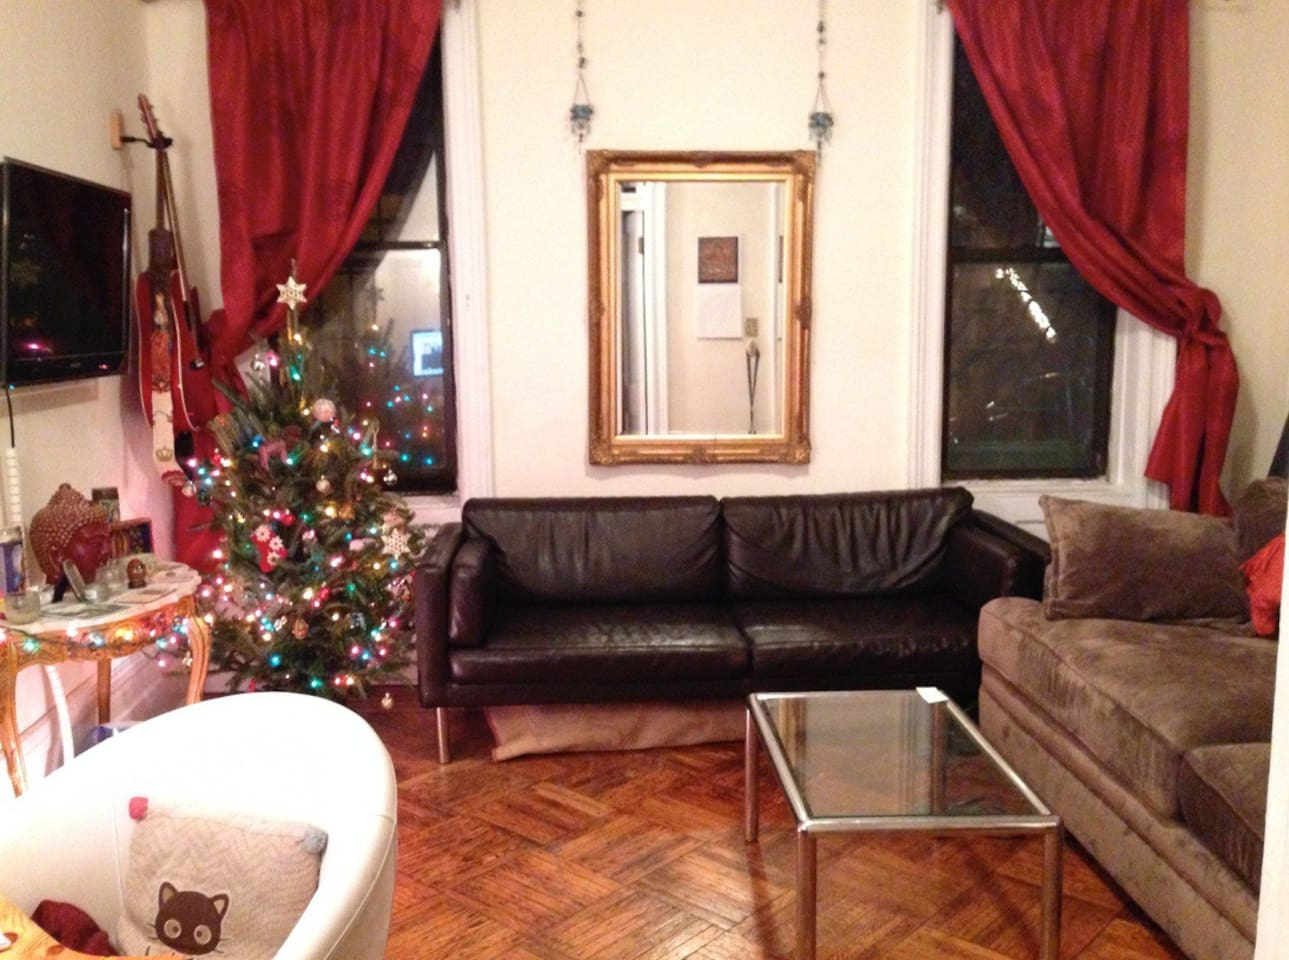 This is the living room. We are on the ground floor, so our windows look out onto our brownstone and tree-lined block.